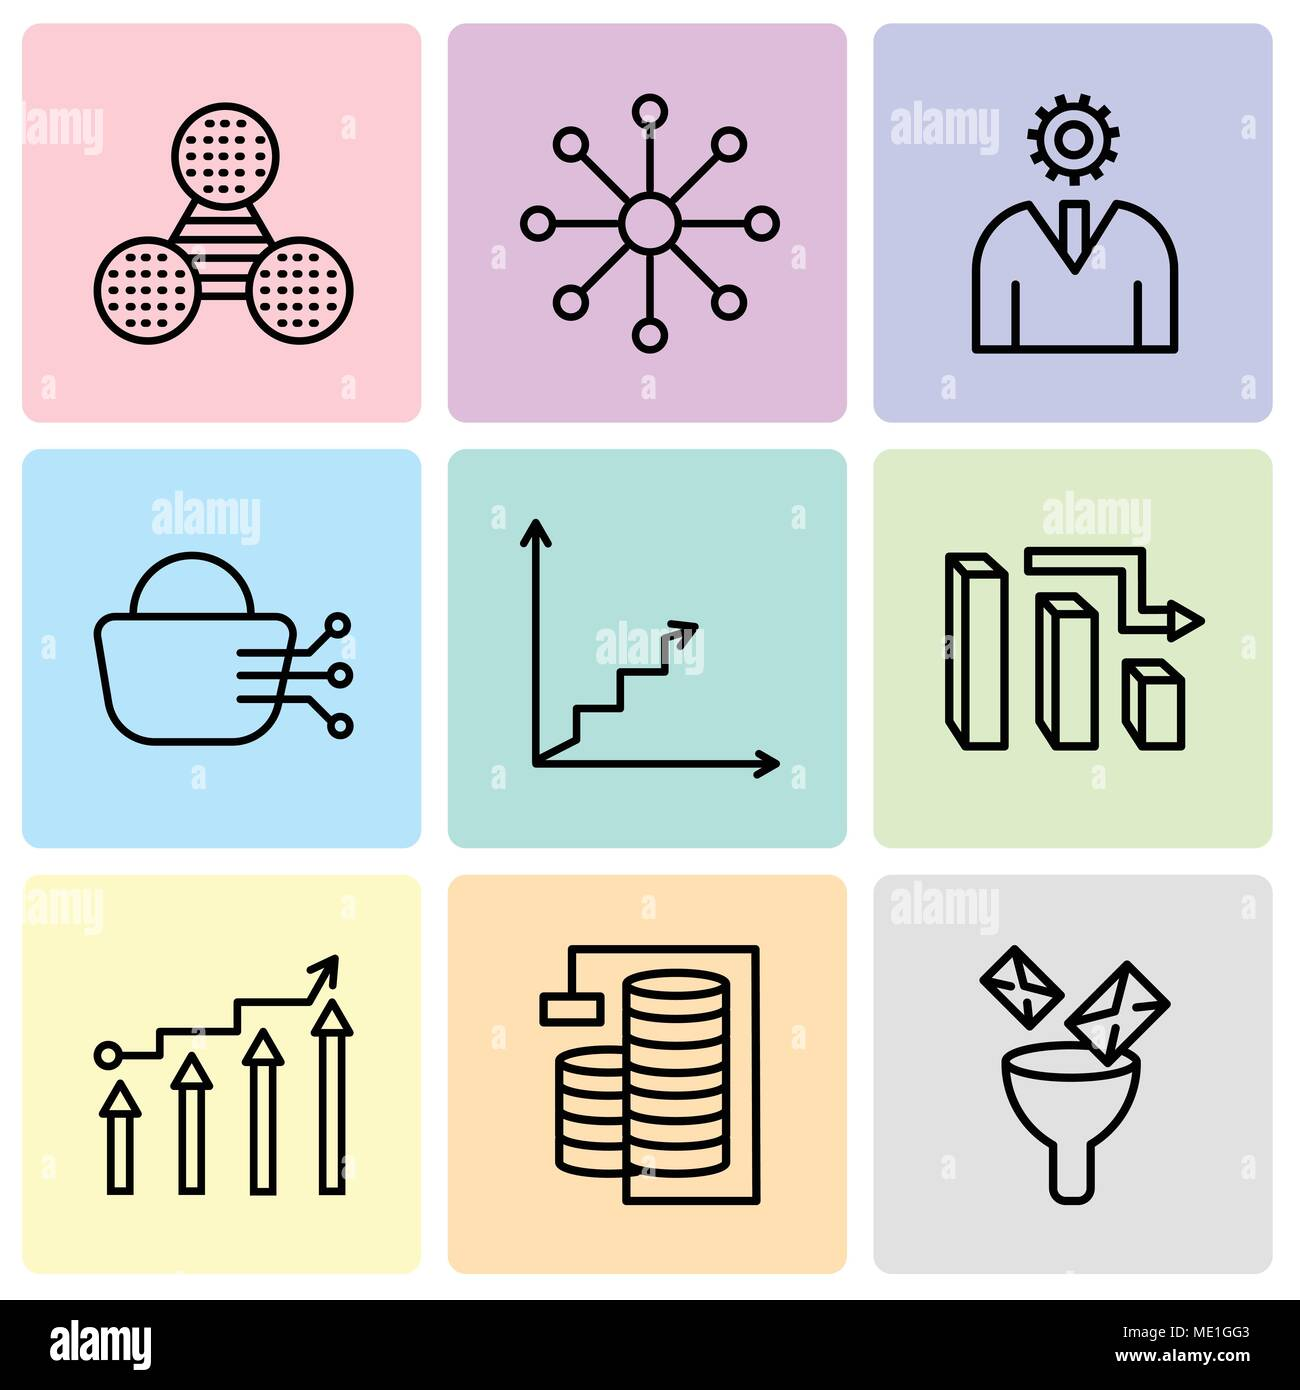 Set Of 9 simple editable icons such as Mail Funneling, Database Analysis, Binary Processed Mobile Analysis, 3d data analytics bars, Data analytics asc - Stock Image